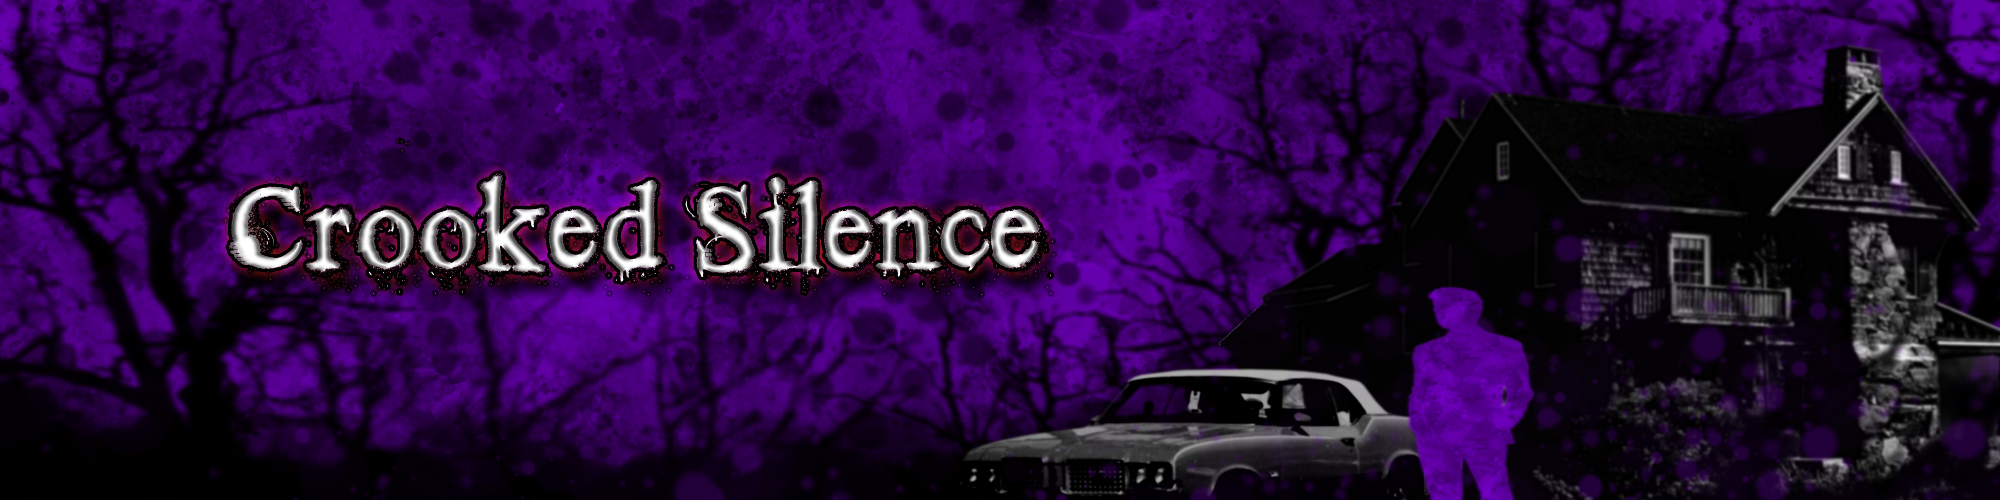 Crooked Silence: The Full Pack